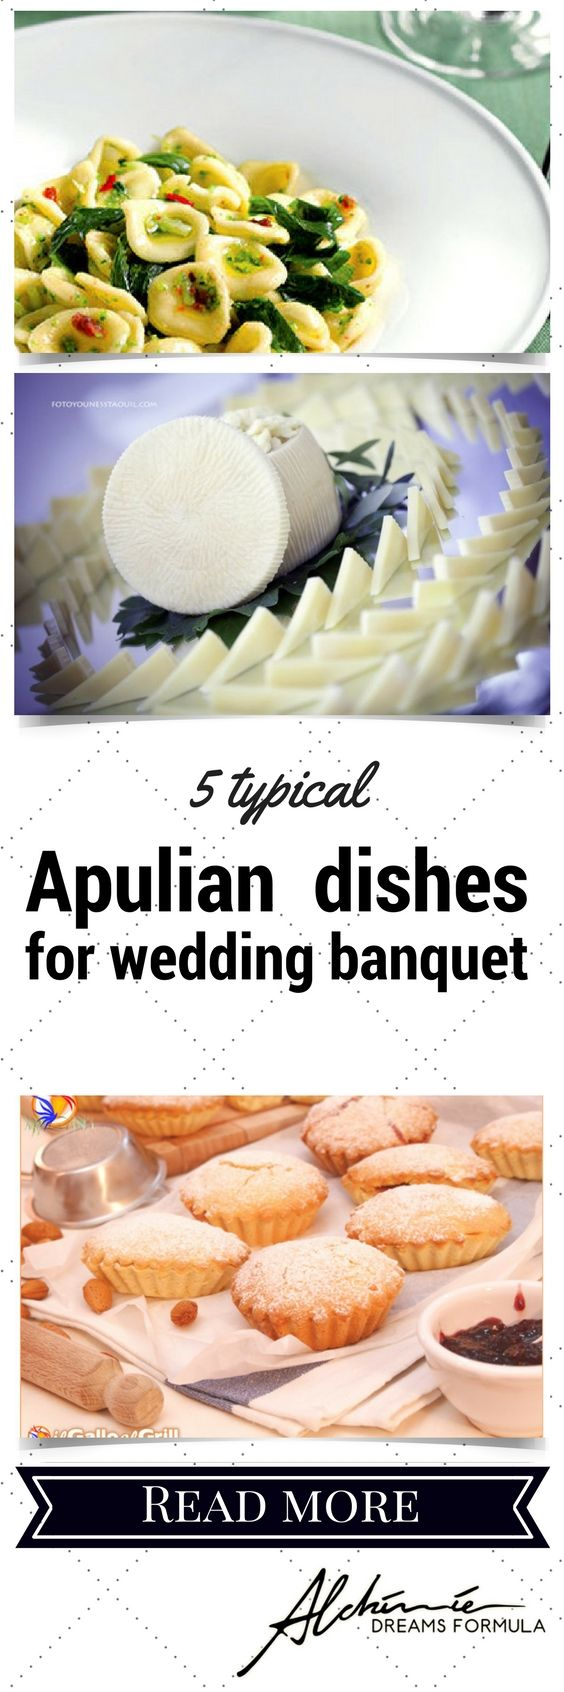 5 typical Apulian must-have dishes for your wedding banquet